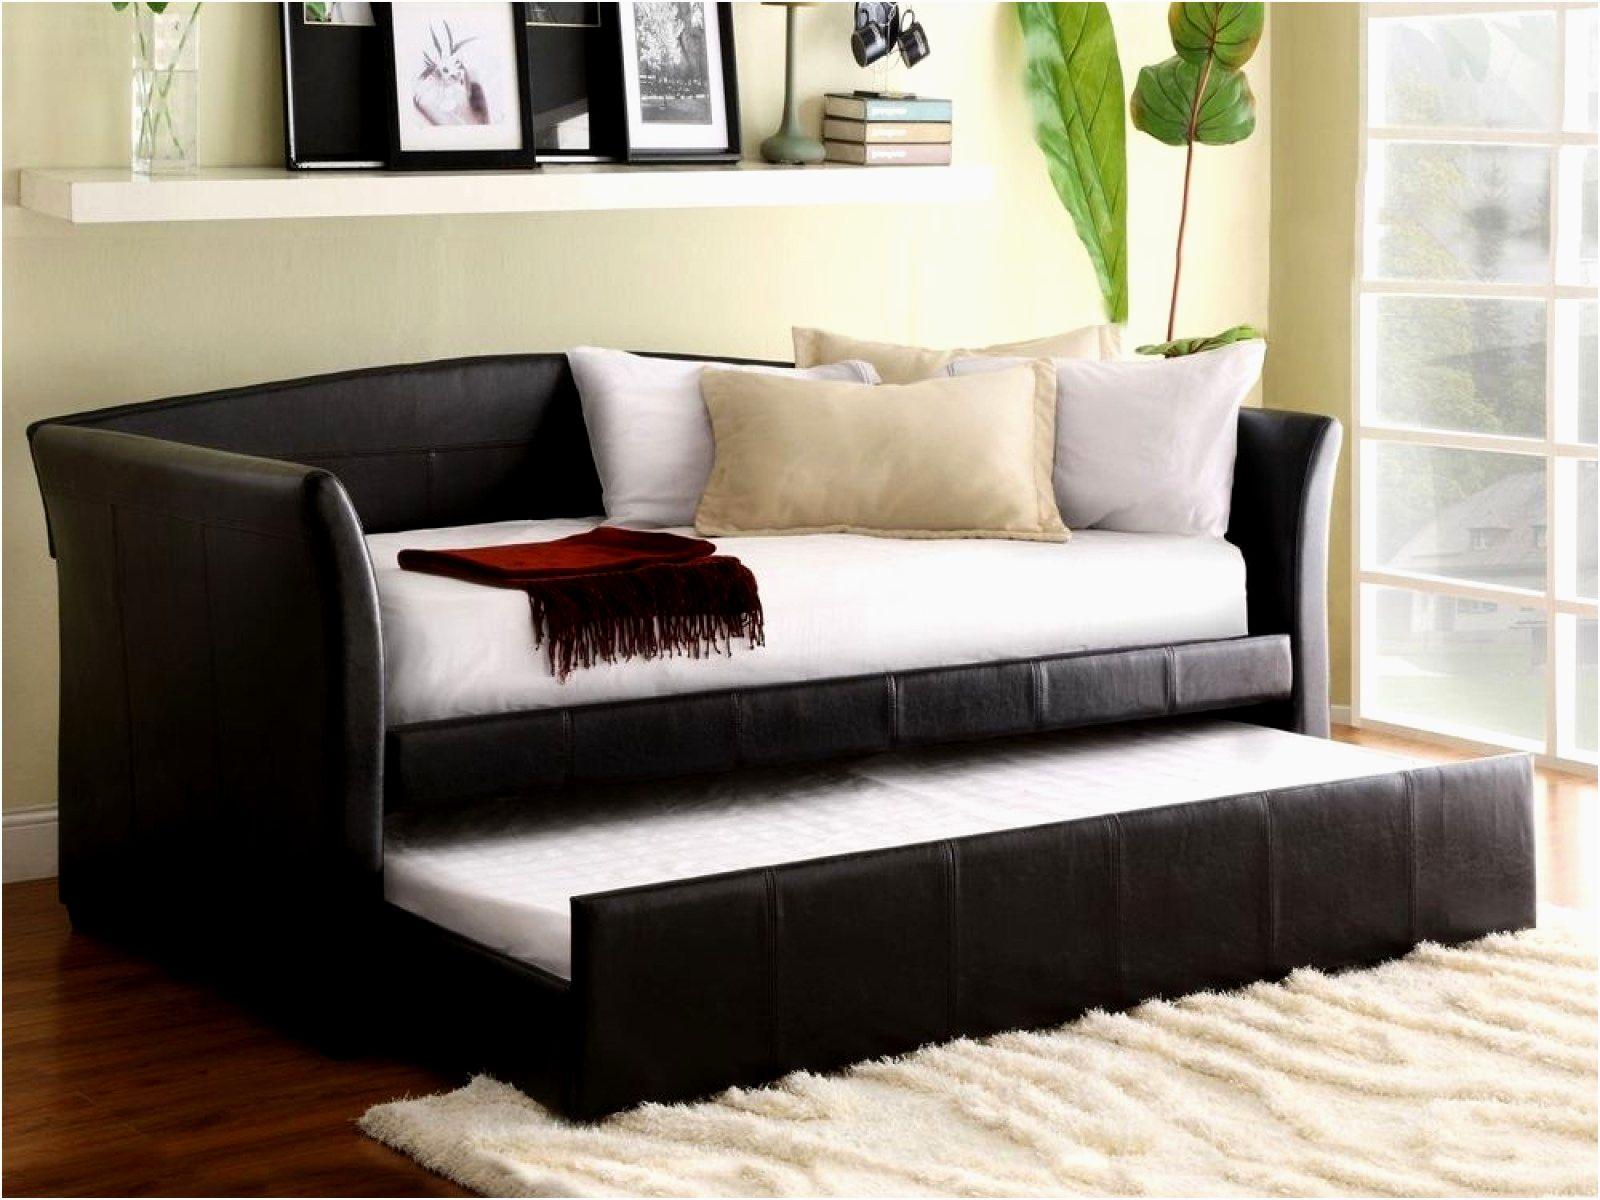 inspirational walmart sleeper sofa photograph-Top Walmart Sleeper sofa Inspiration